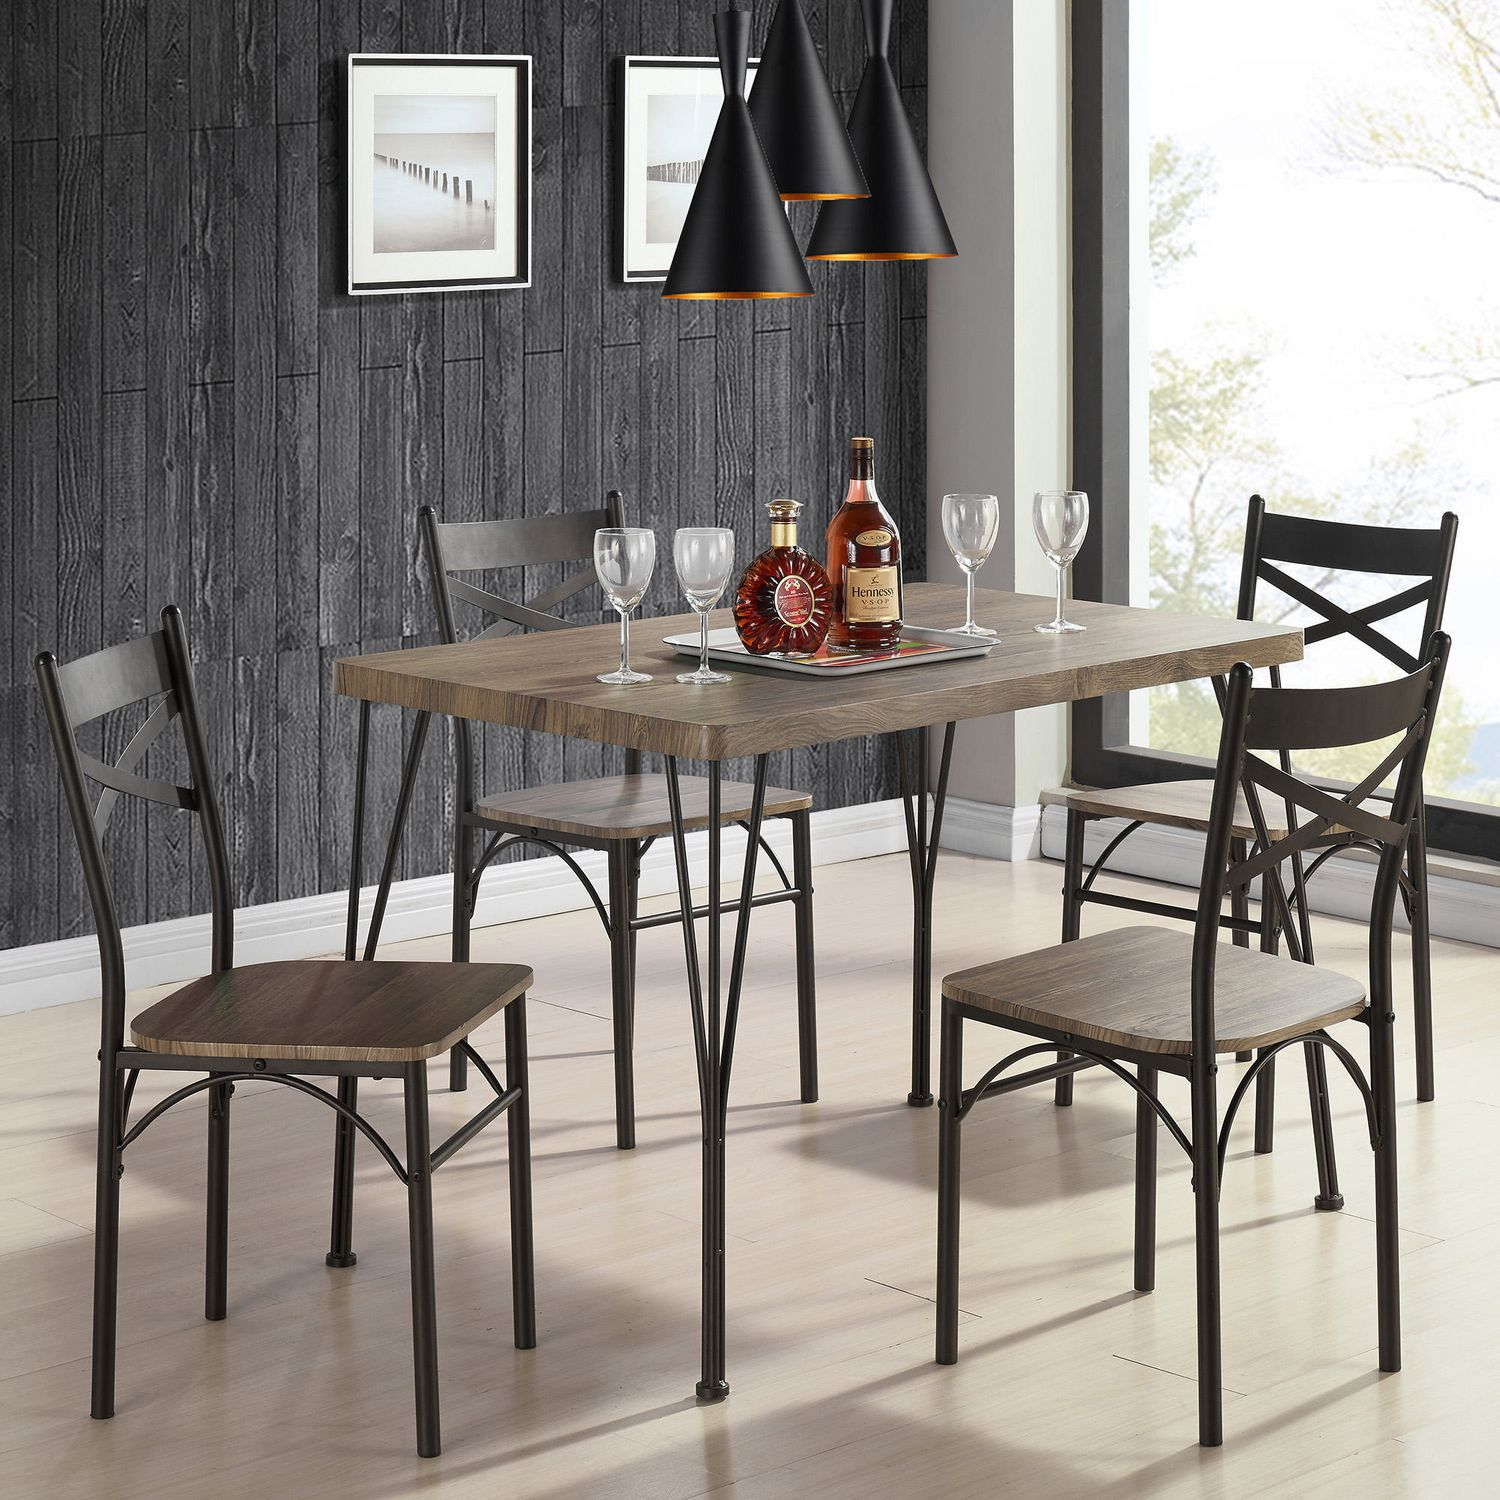 Dining Table Set – 5 Pc | Walmart Canada Regarding Best And Newest Aria 5 Piece Dining Sets (View 10 of 20)